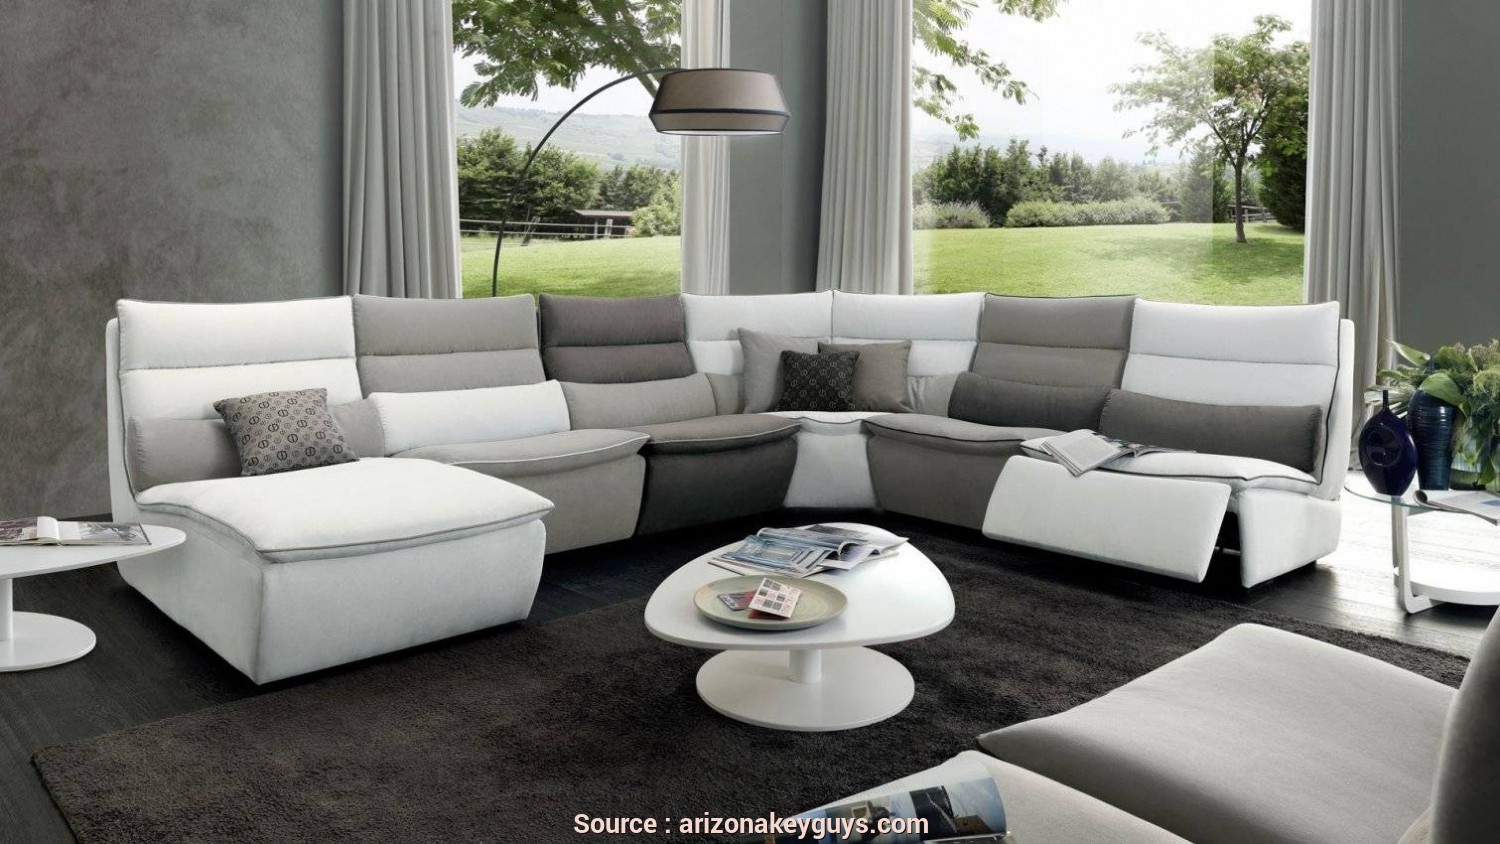 Divani Chatodax, Maestoso Top 15 Of Divani Chateau D Ax Leather Sofas Avec Home Throughout